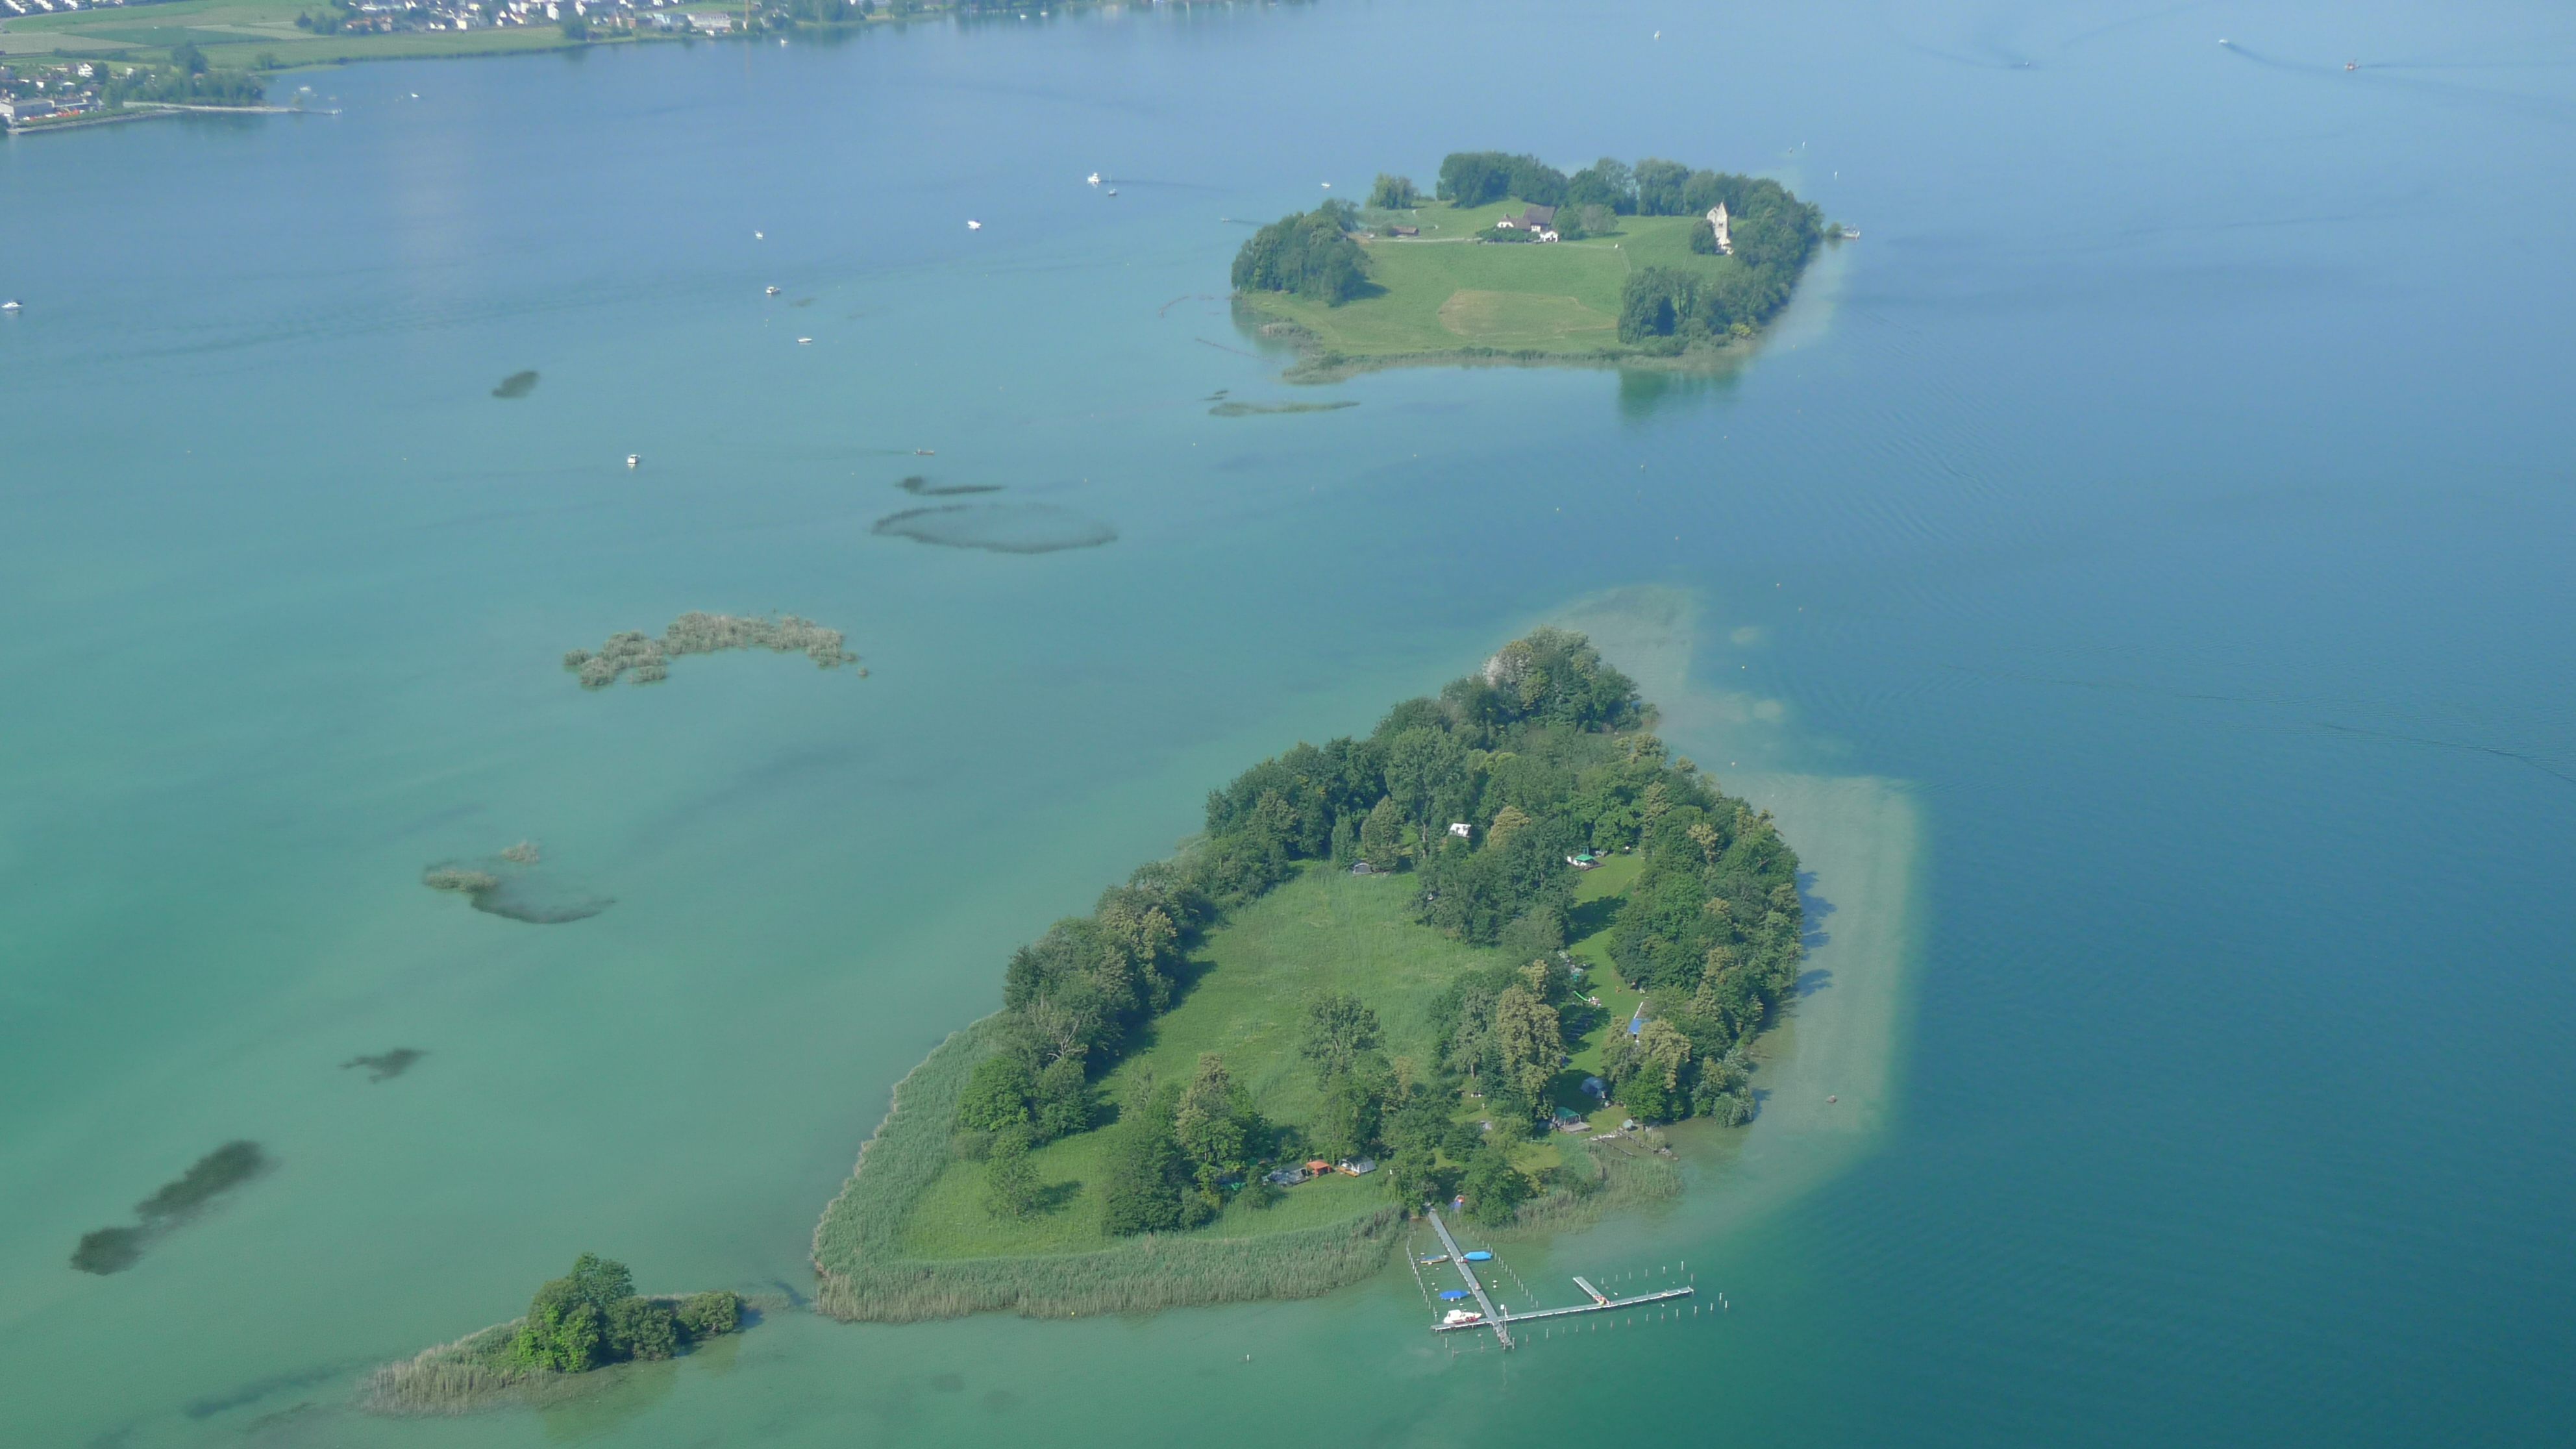 Switzerland: Controversial Plans for ManMade Islands In Lake Zurich